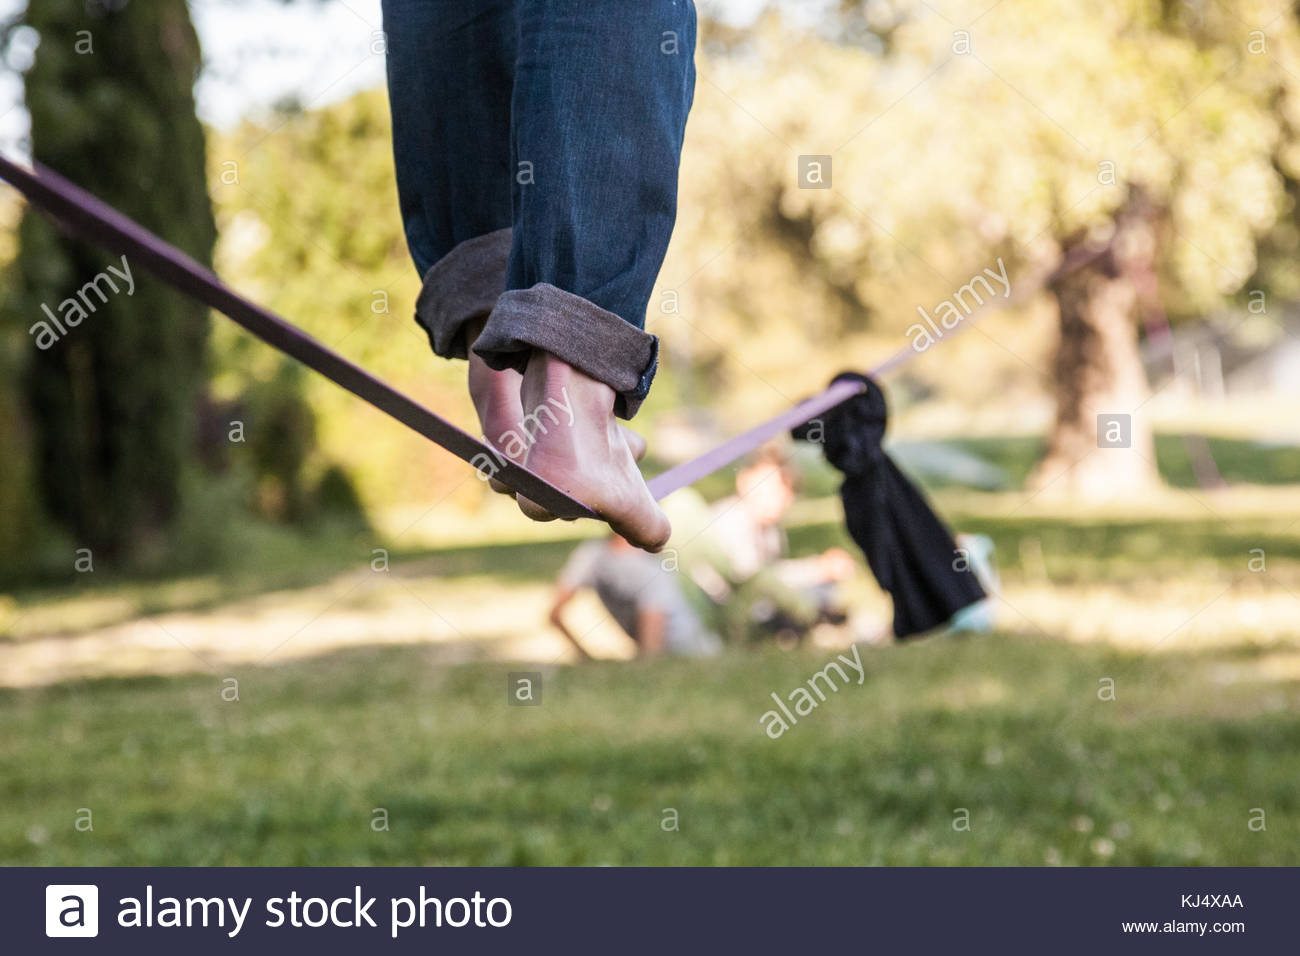 man's feet on low tight rope - Stock Image